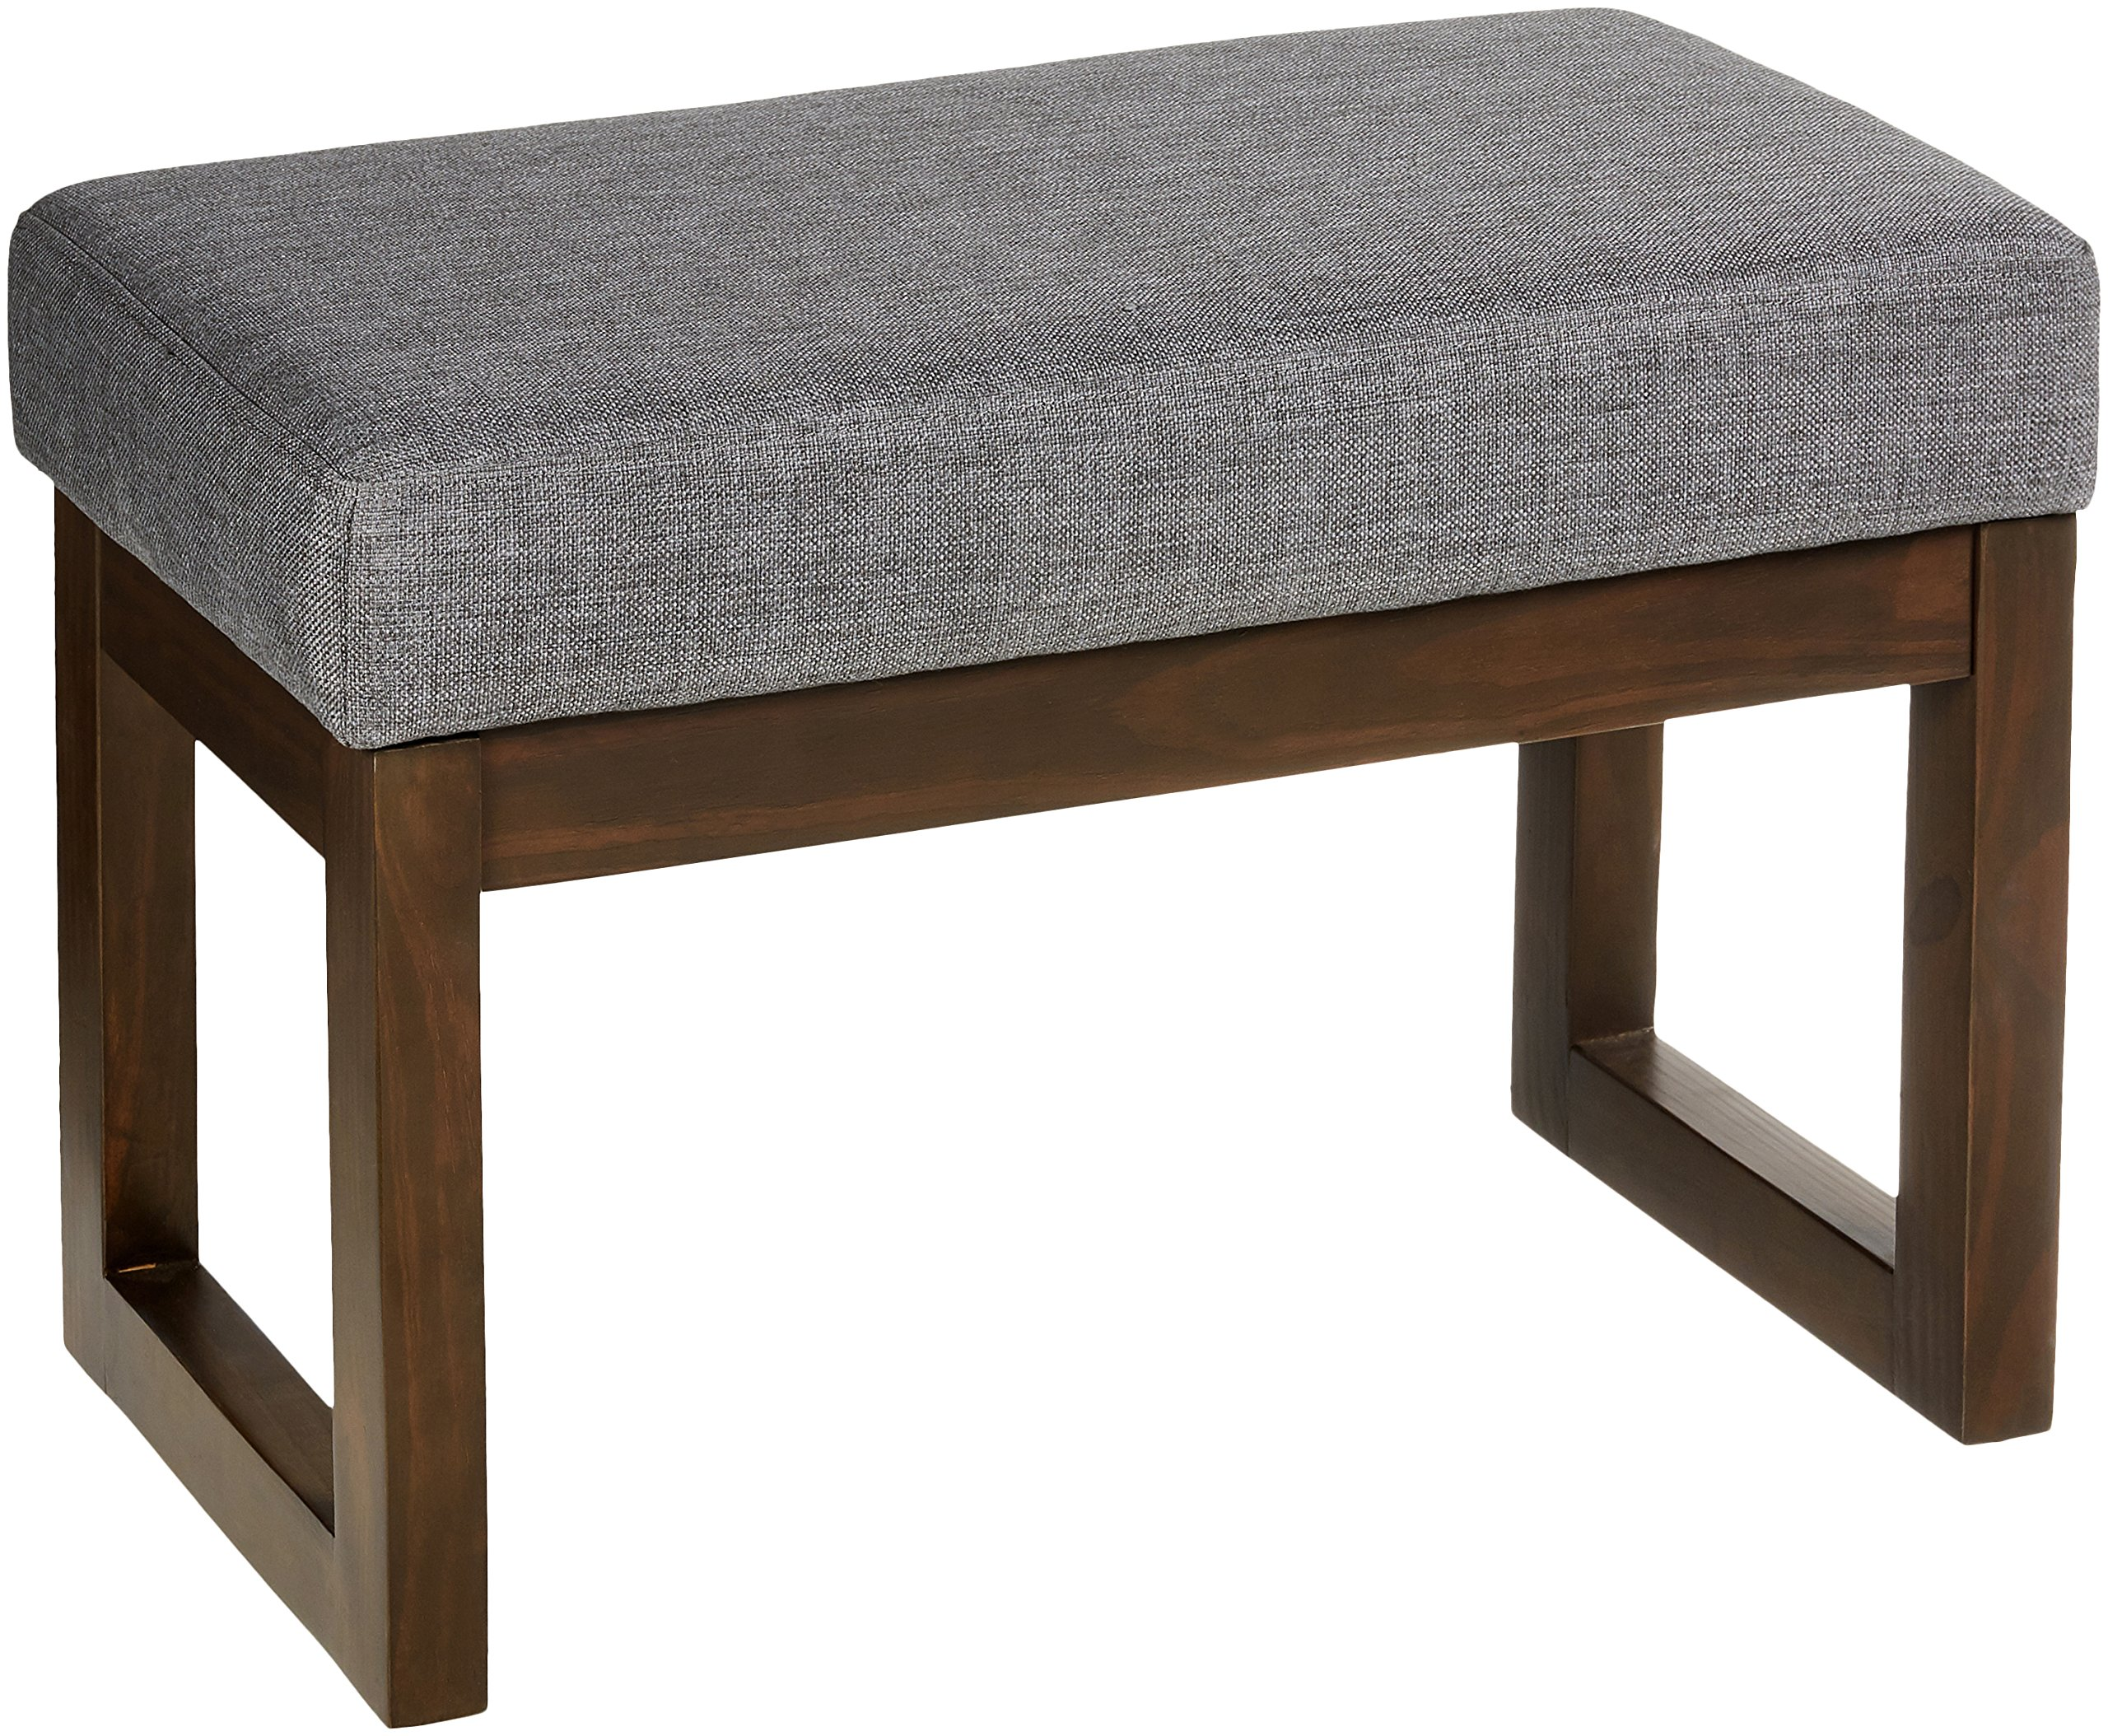 Red Hook Leda Rectangular Upholstered Ottoman Bench - 27 x 14.5 x 18.5 Inches, Stone Grey by Red Hook